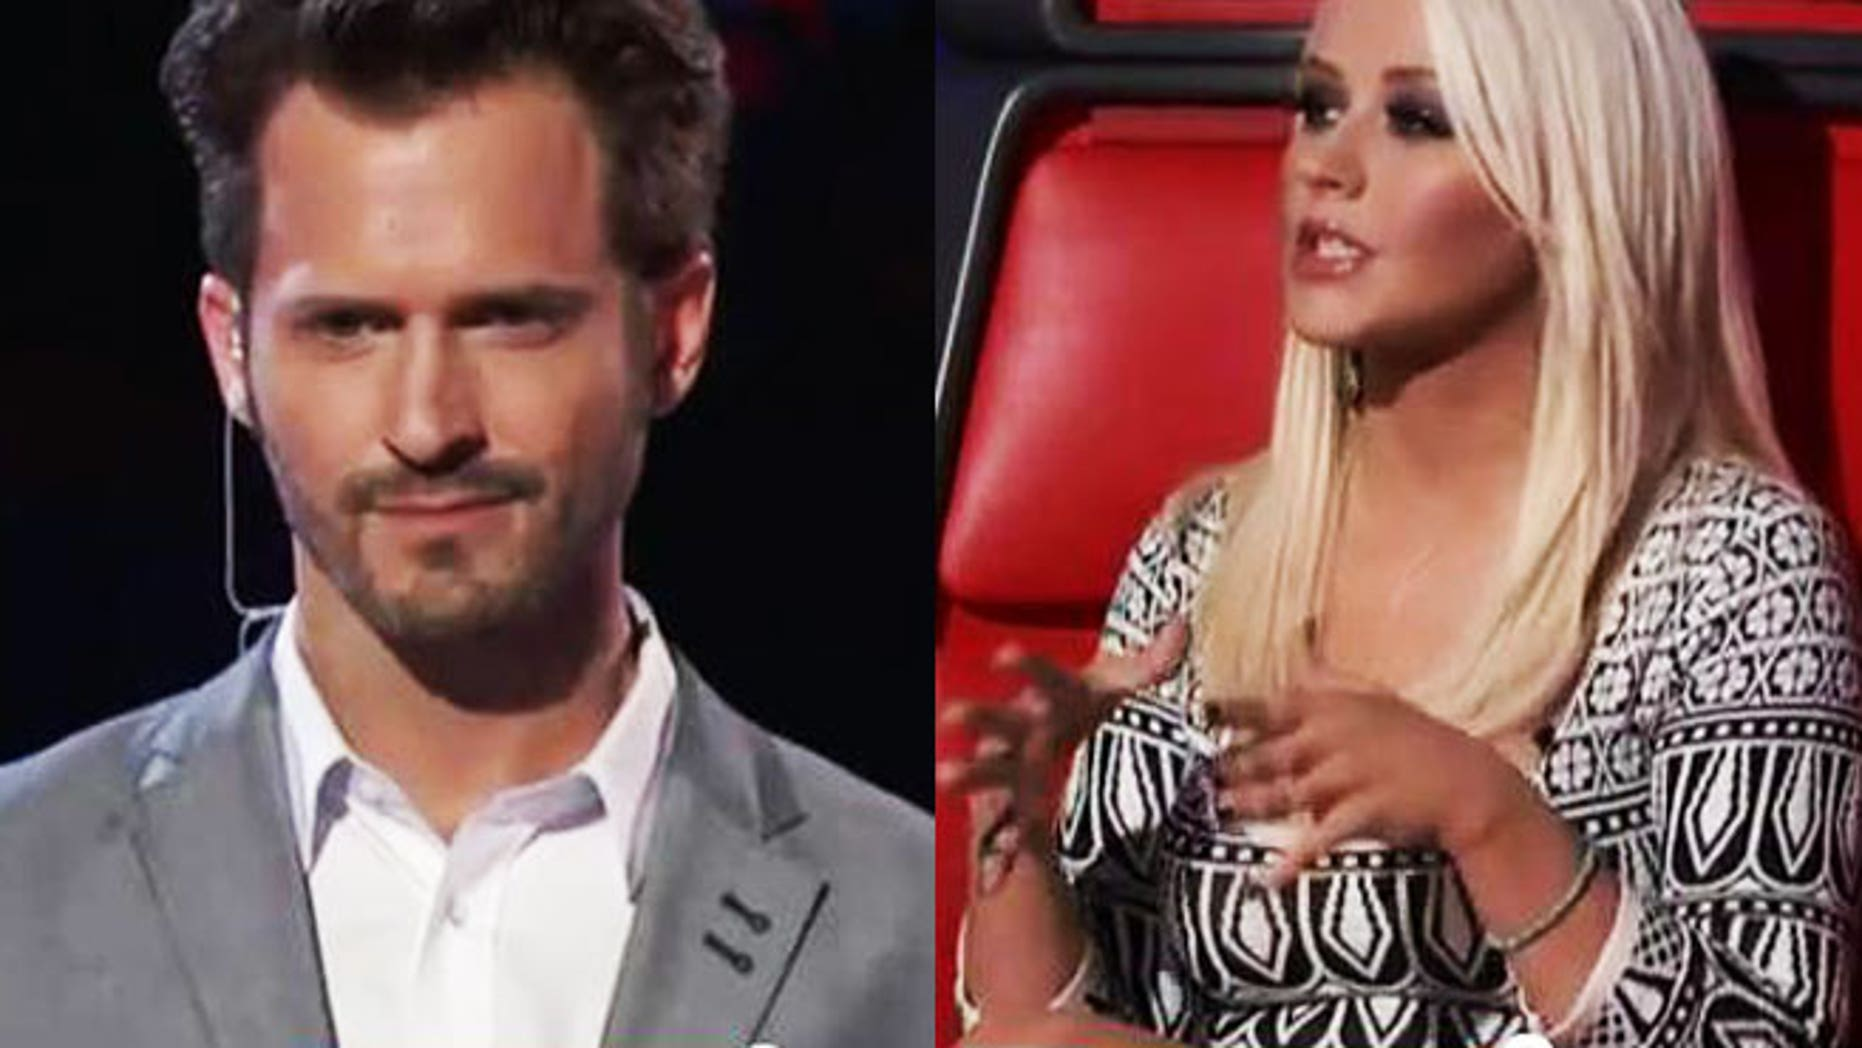 Was Tony Lucca raked over the coals by his former Mouseketeer buddy, Christina Aguilera?